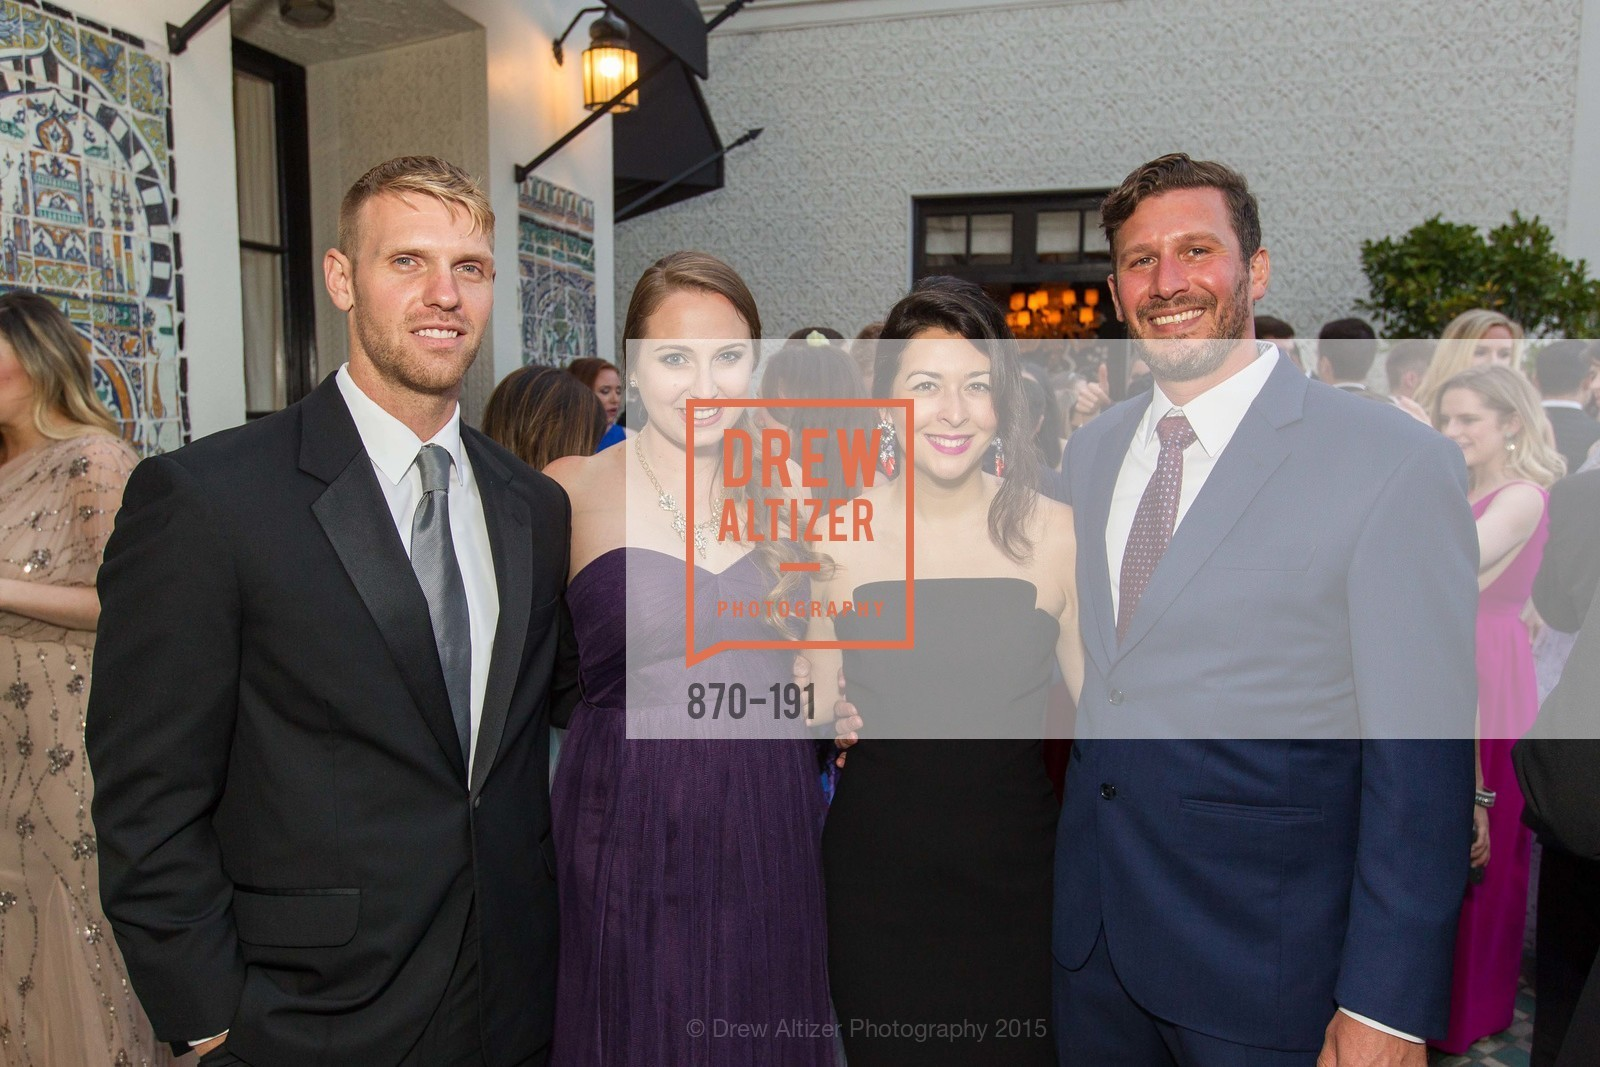 Nick Andrus, Victoria Whitehill, Sahar Waziri, Chris Cornell, Spinsters of San Francisco Annual Ball 2015, Penthouse at the Fairmont San Francisco (950 Mason Street). 950 Mason Street, June 28th, 2015,Drew Altizer, Drew Altizer Photography, full-service agency, private events, San Francisco photographer, photographer california